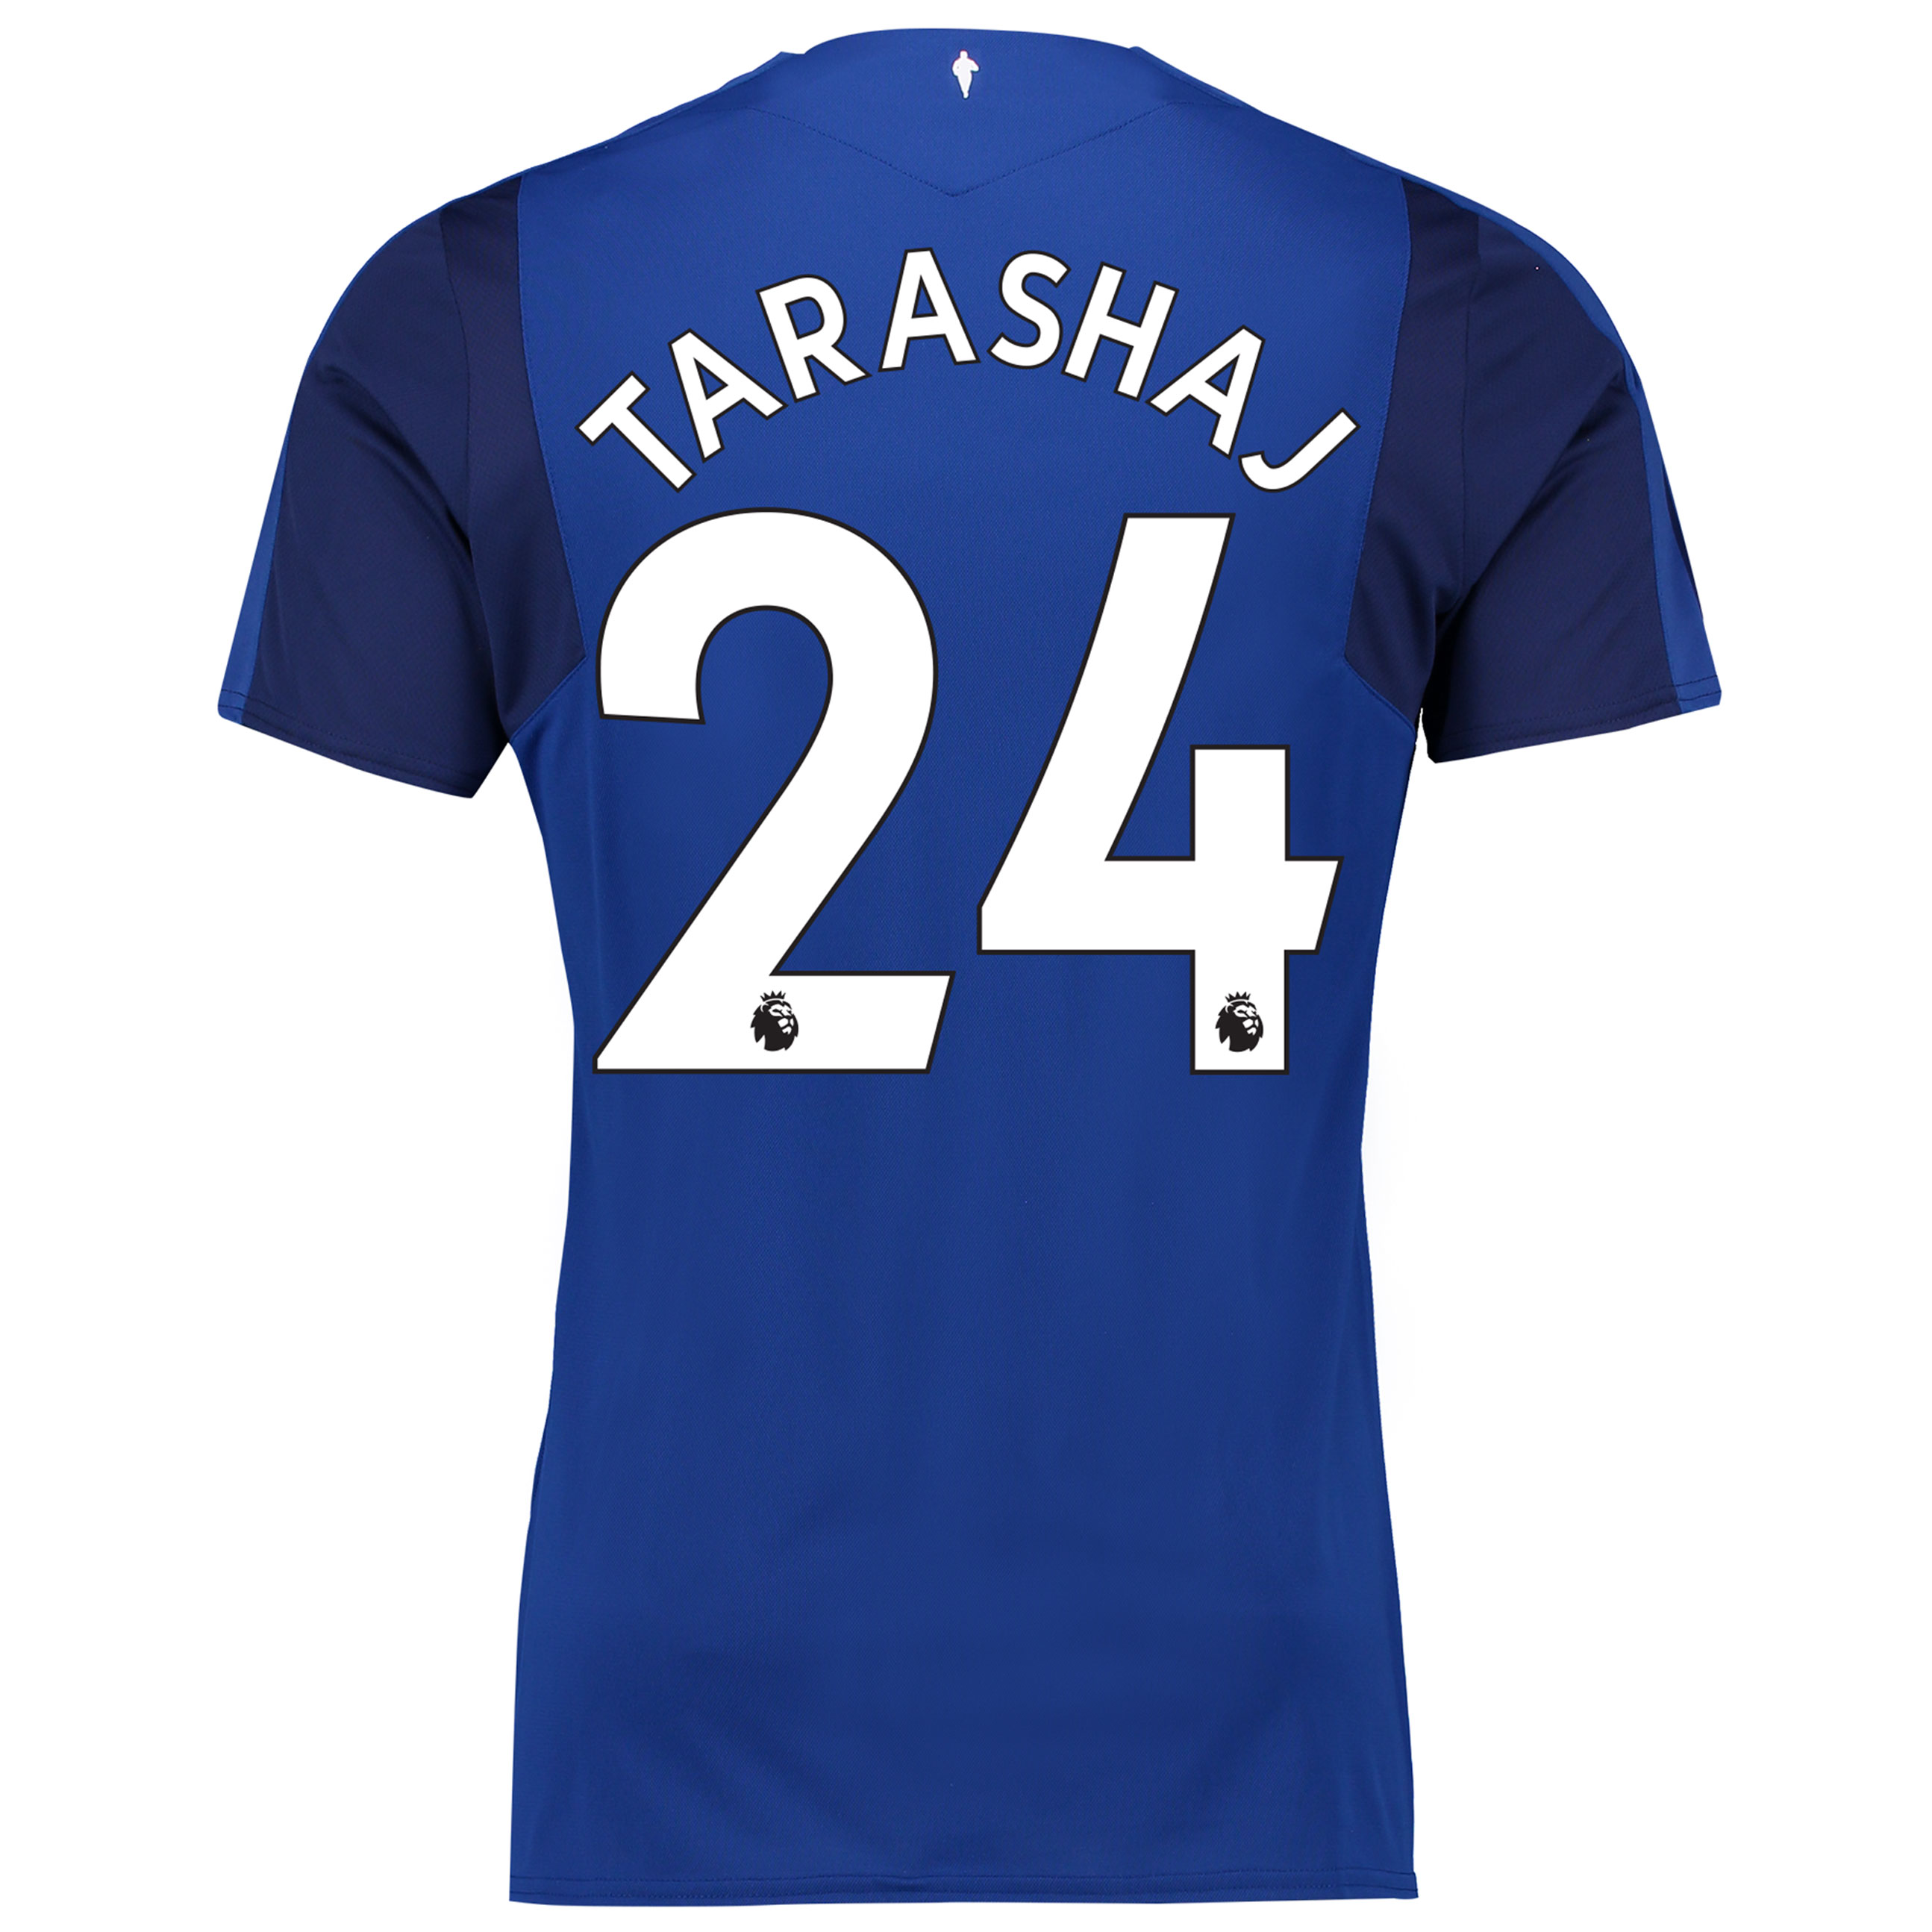 Everton Home Shirt 2017/18 with Tarashaj 24 printing